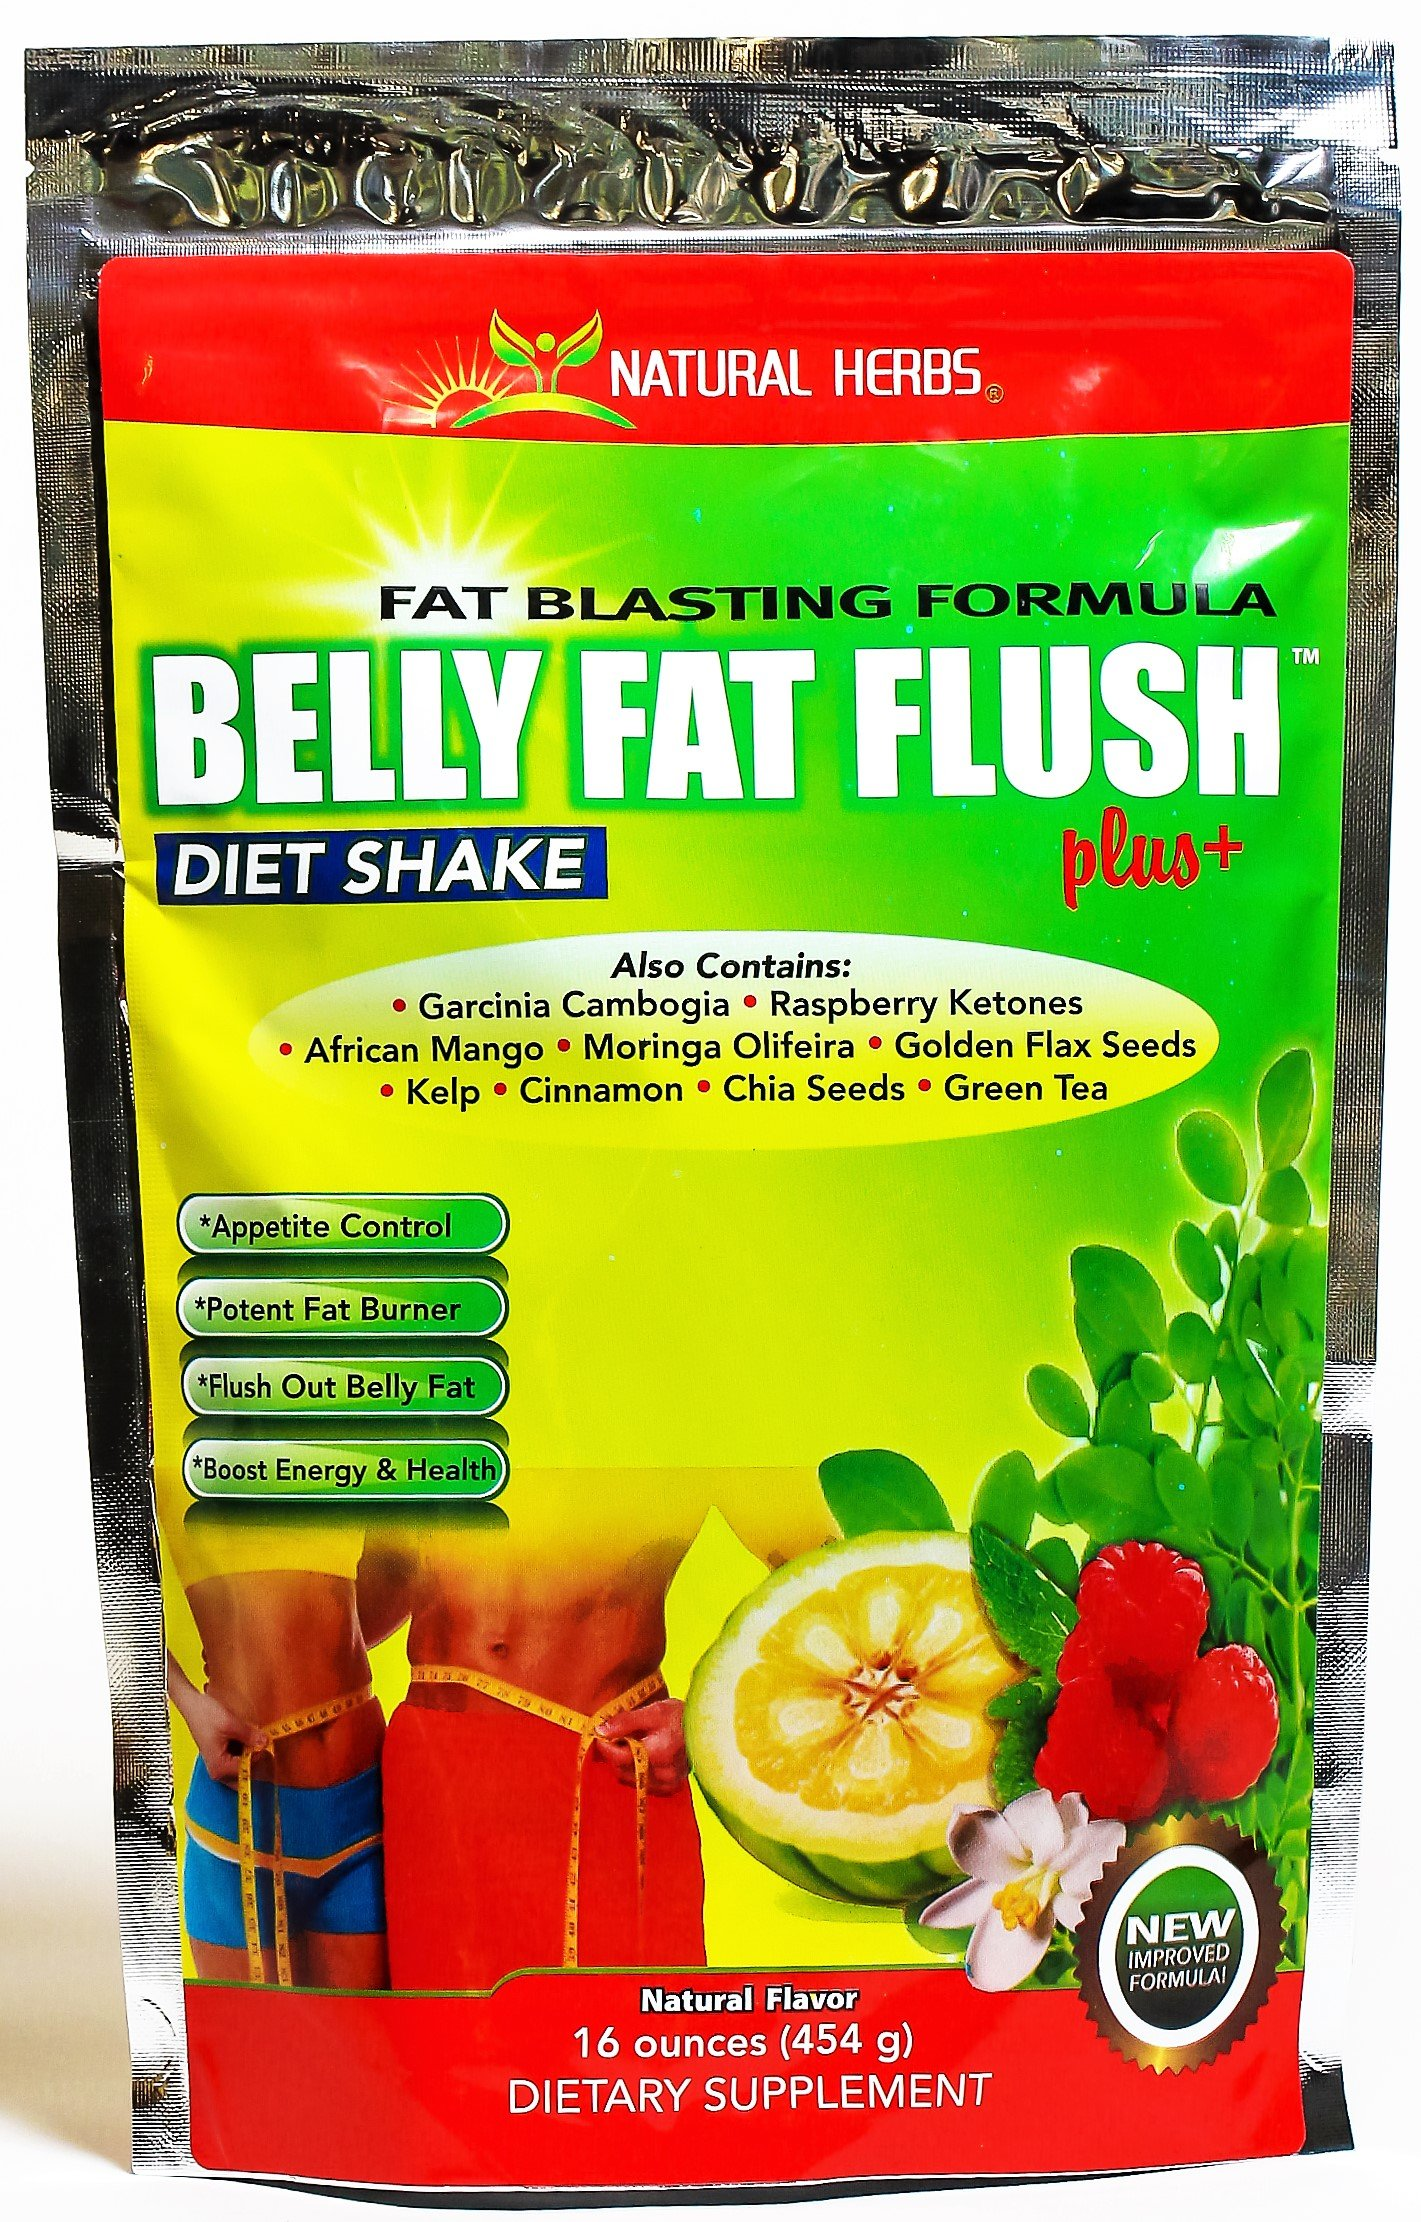 BELLY FAT FLUSH PLUS by NATURAL HERBS